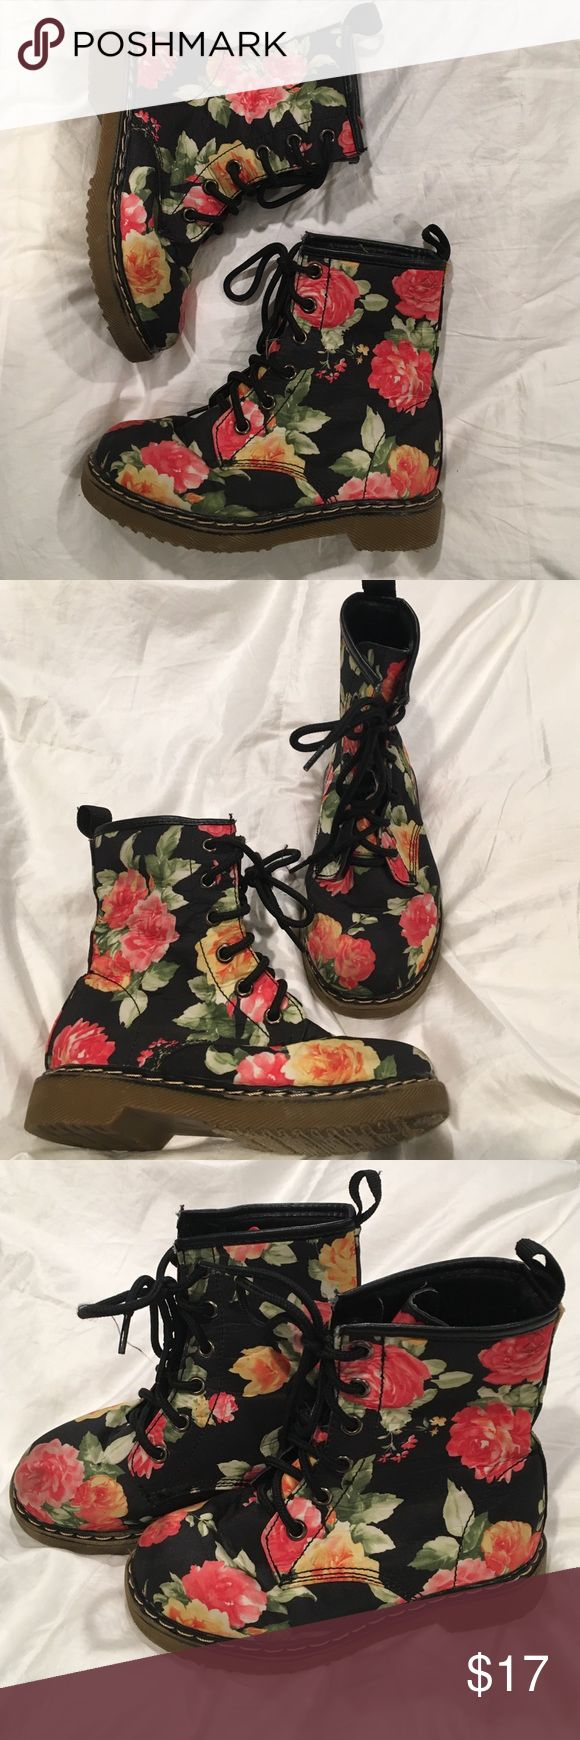 Little girls size 13 floral print combat boots Super cute little girls combat boots with floral detail on black background. Size 13 Shoes Boots